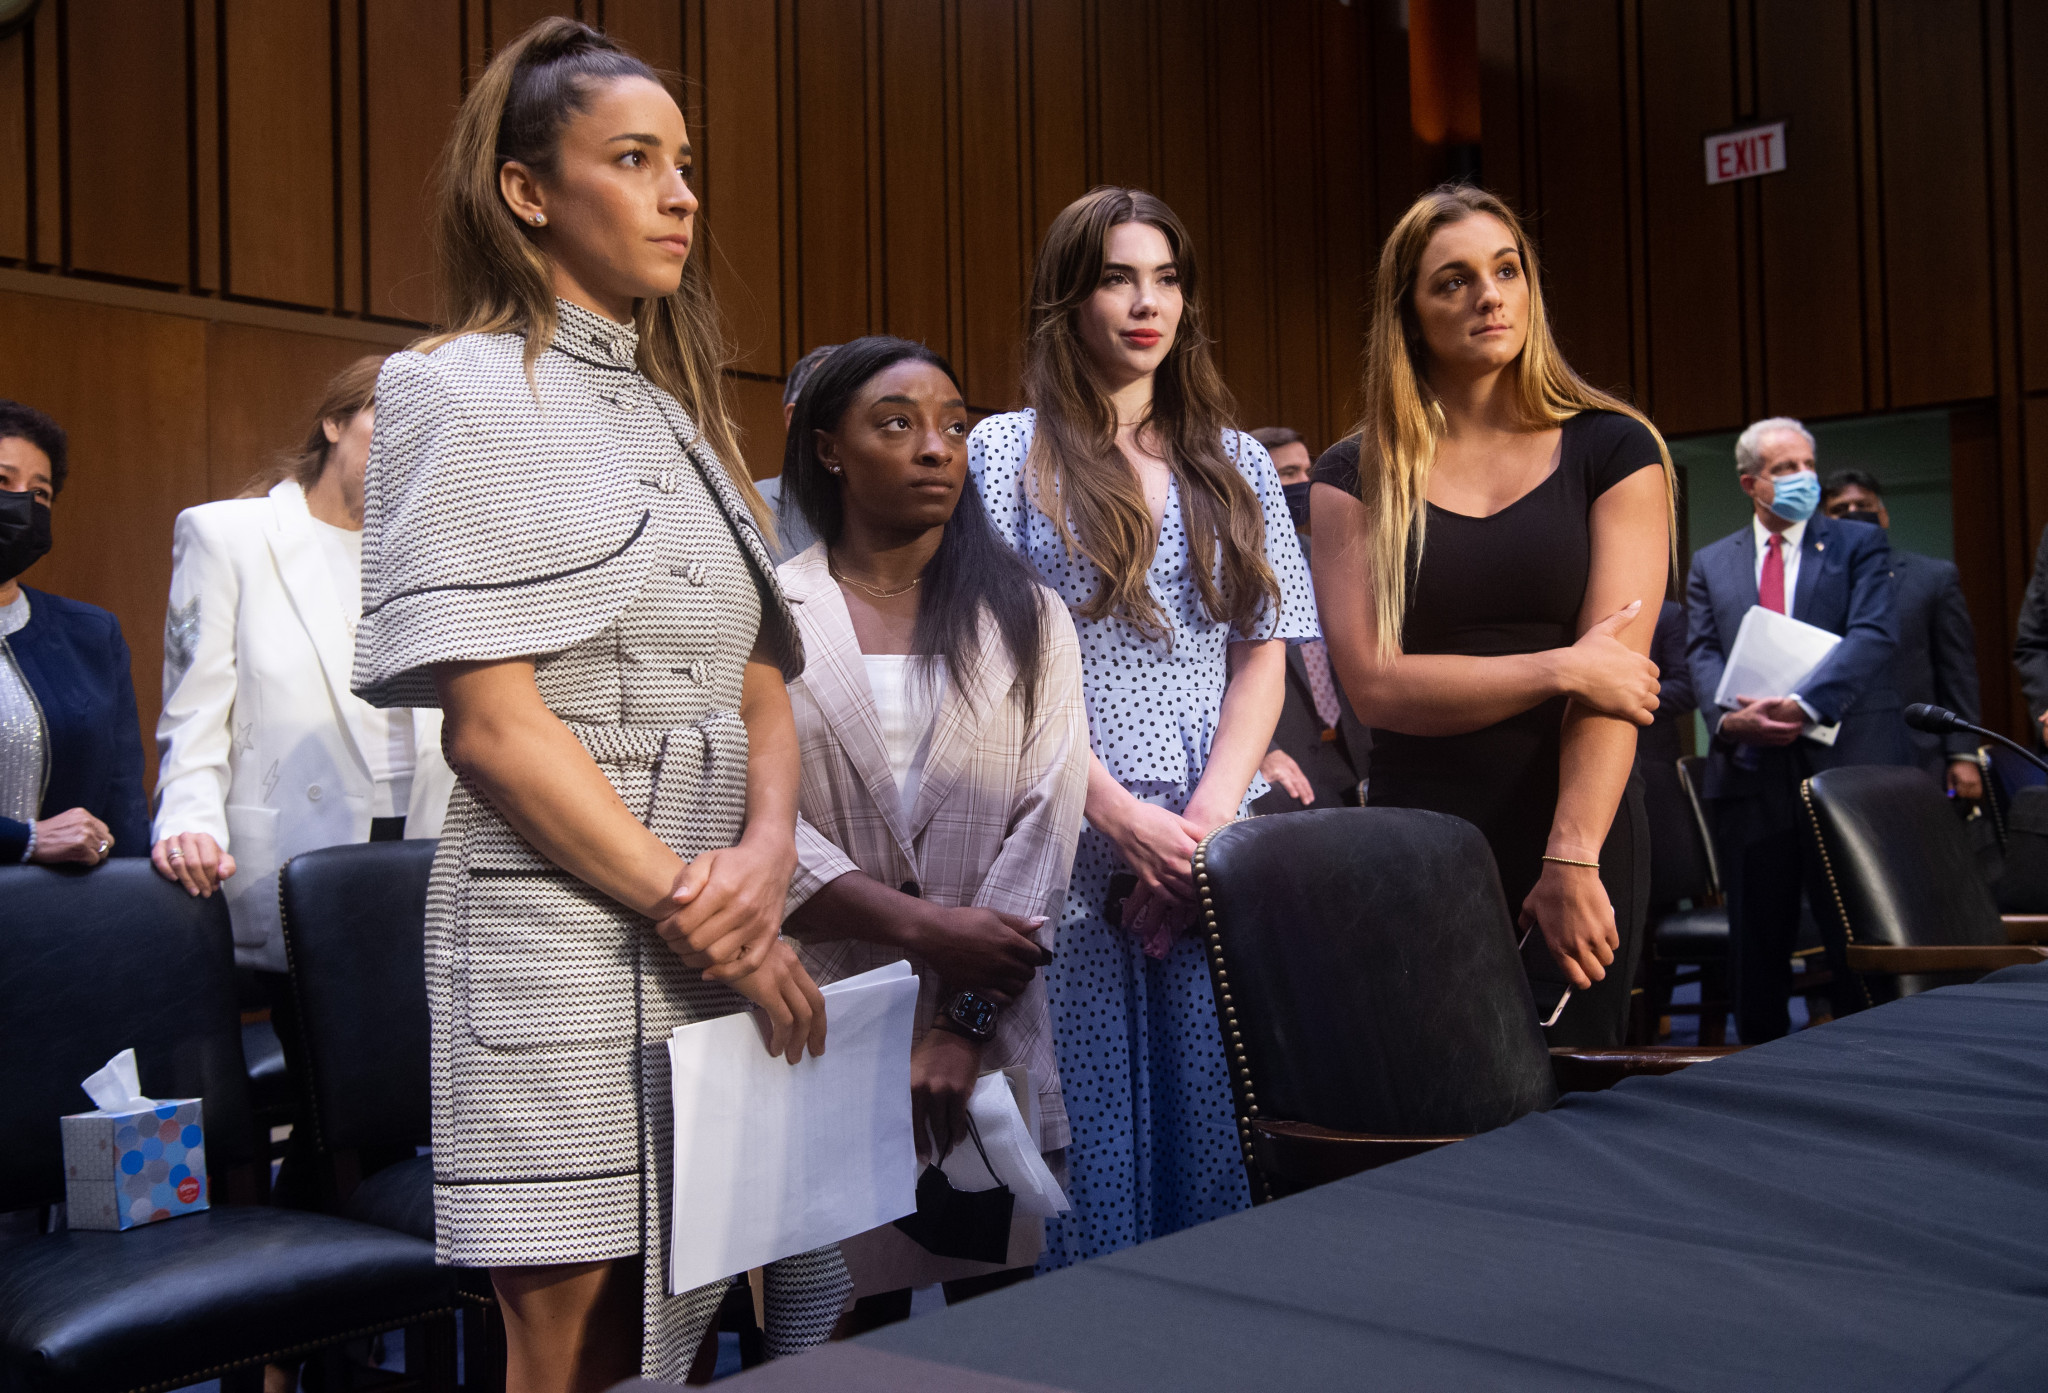 Gymnastic stars call on Congress to dissolve USOPC Board over Nassar scandal